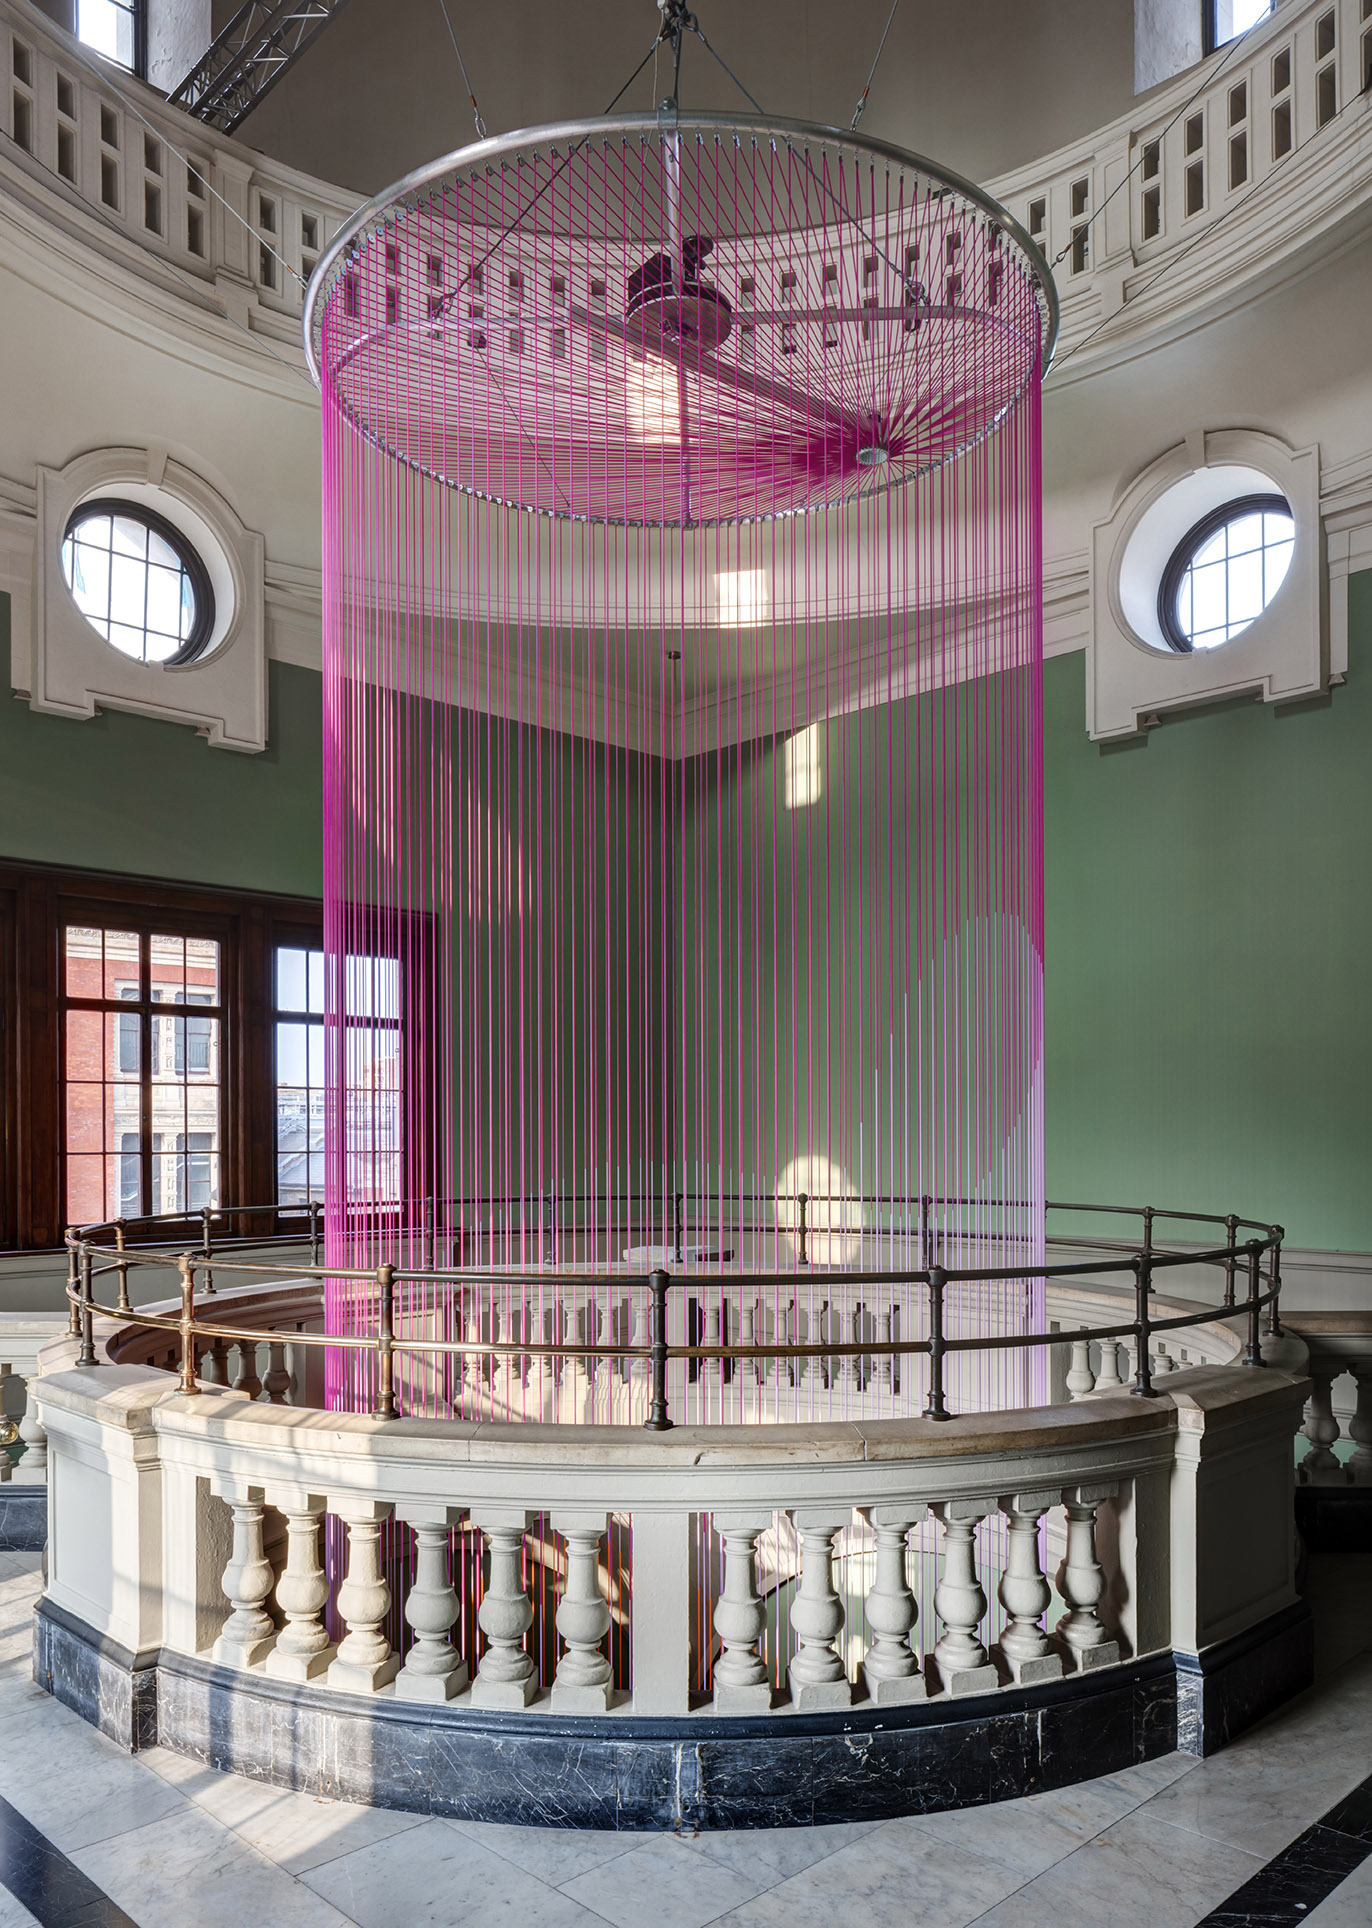 View of Green Rooms mechanical arm from top floor balcony of Victoria and Albert Museum